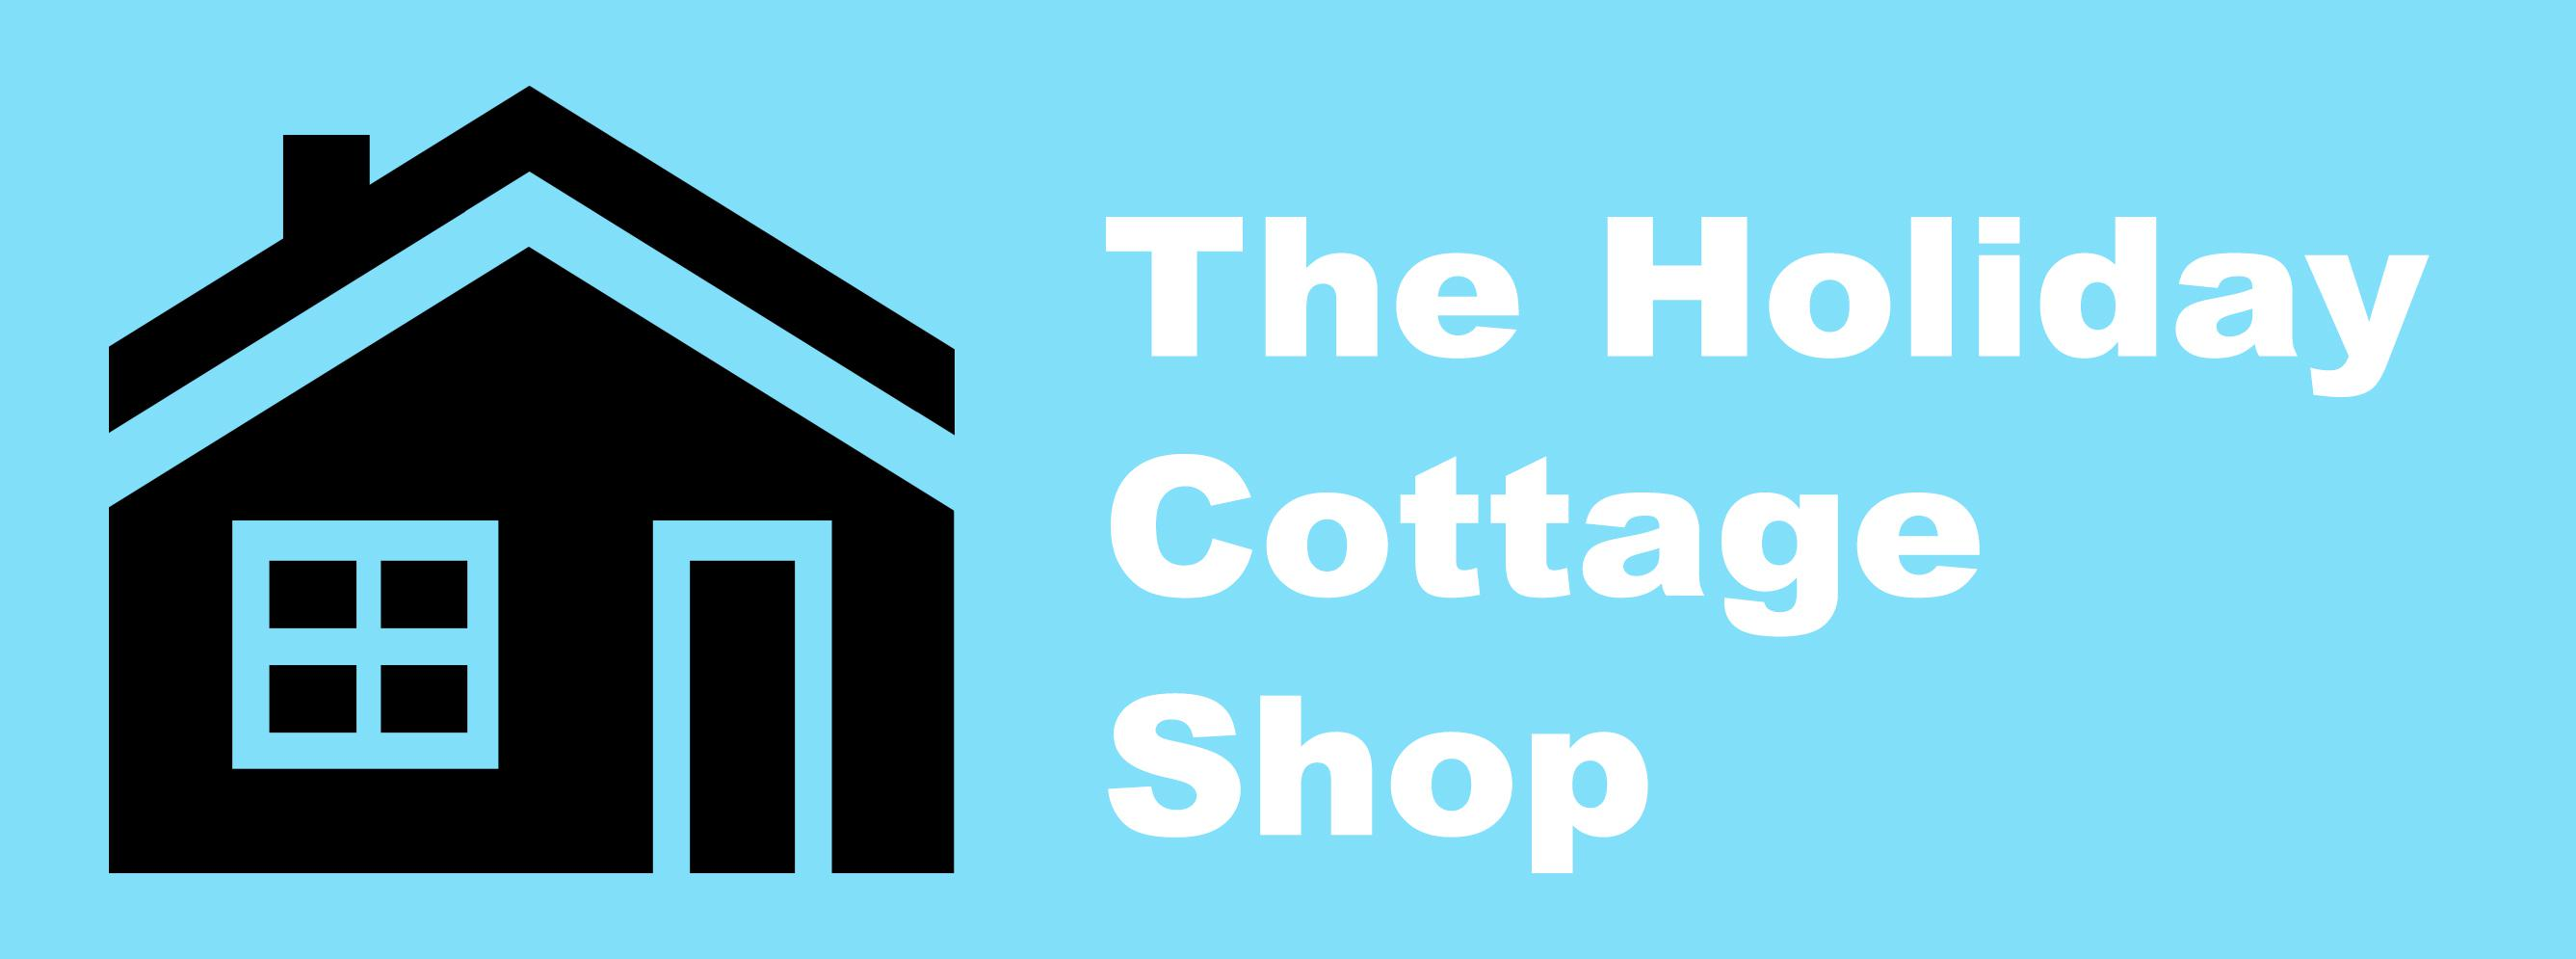 The Holiday Cottage Shop Logo